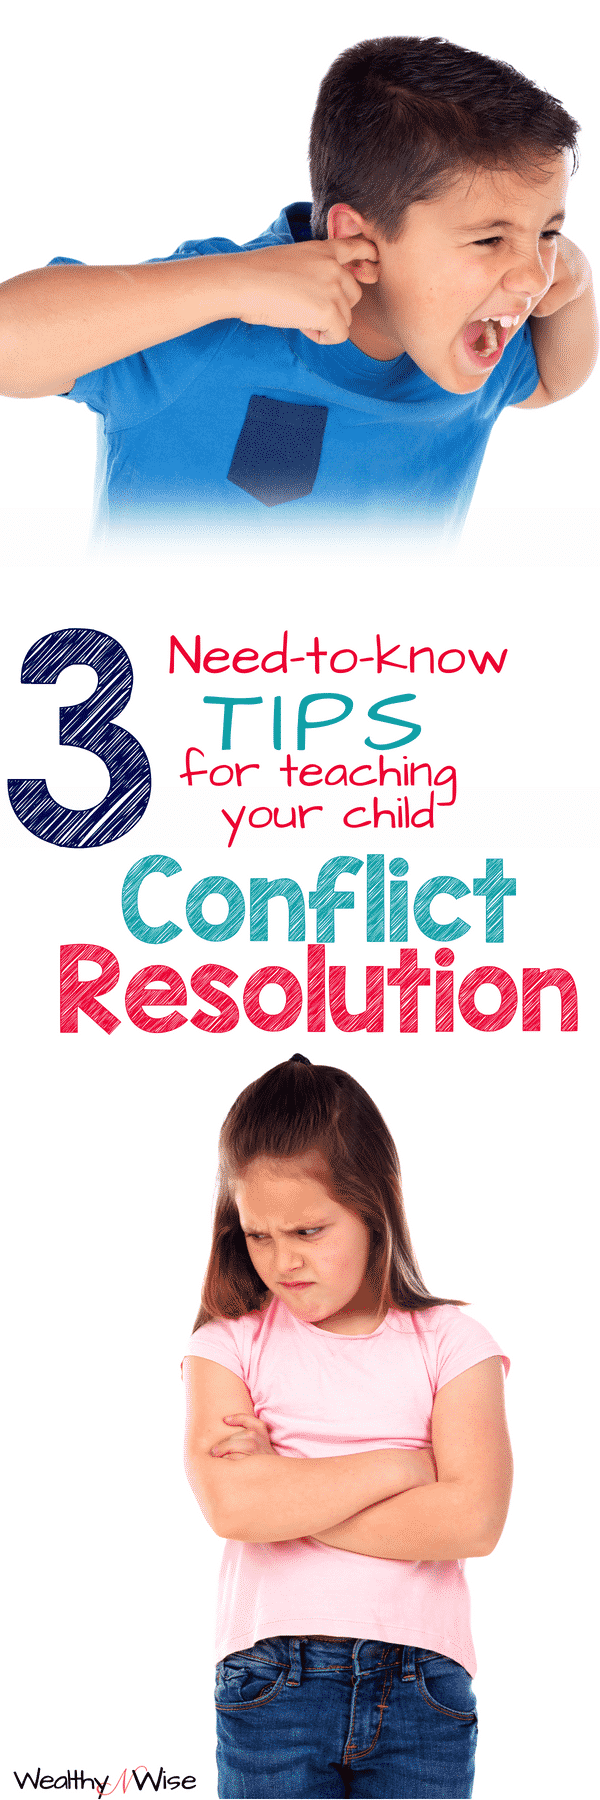 Whether your child is dealing with sibling rivalry or a school bully, they need conflict resolution skills. Take a peek at these 3 need-to-know tips for teaching your child conflict resolution